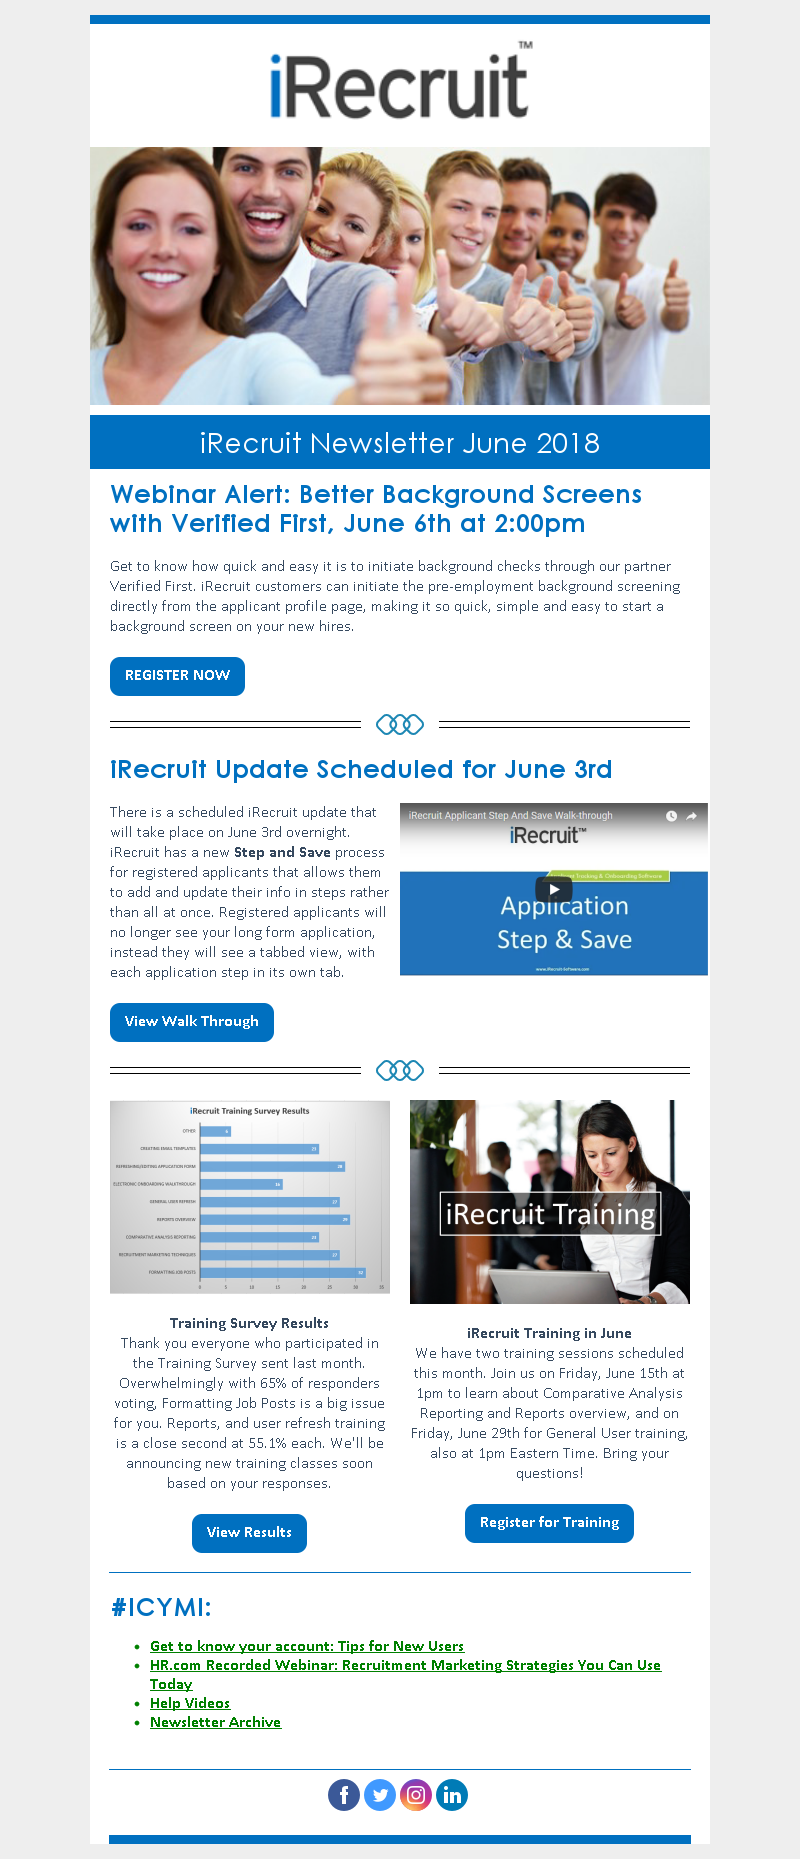 iRecruit Customer Newsletter June 2018